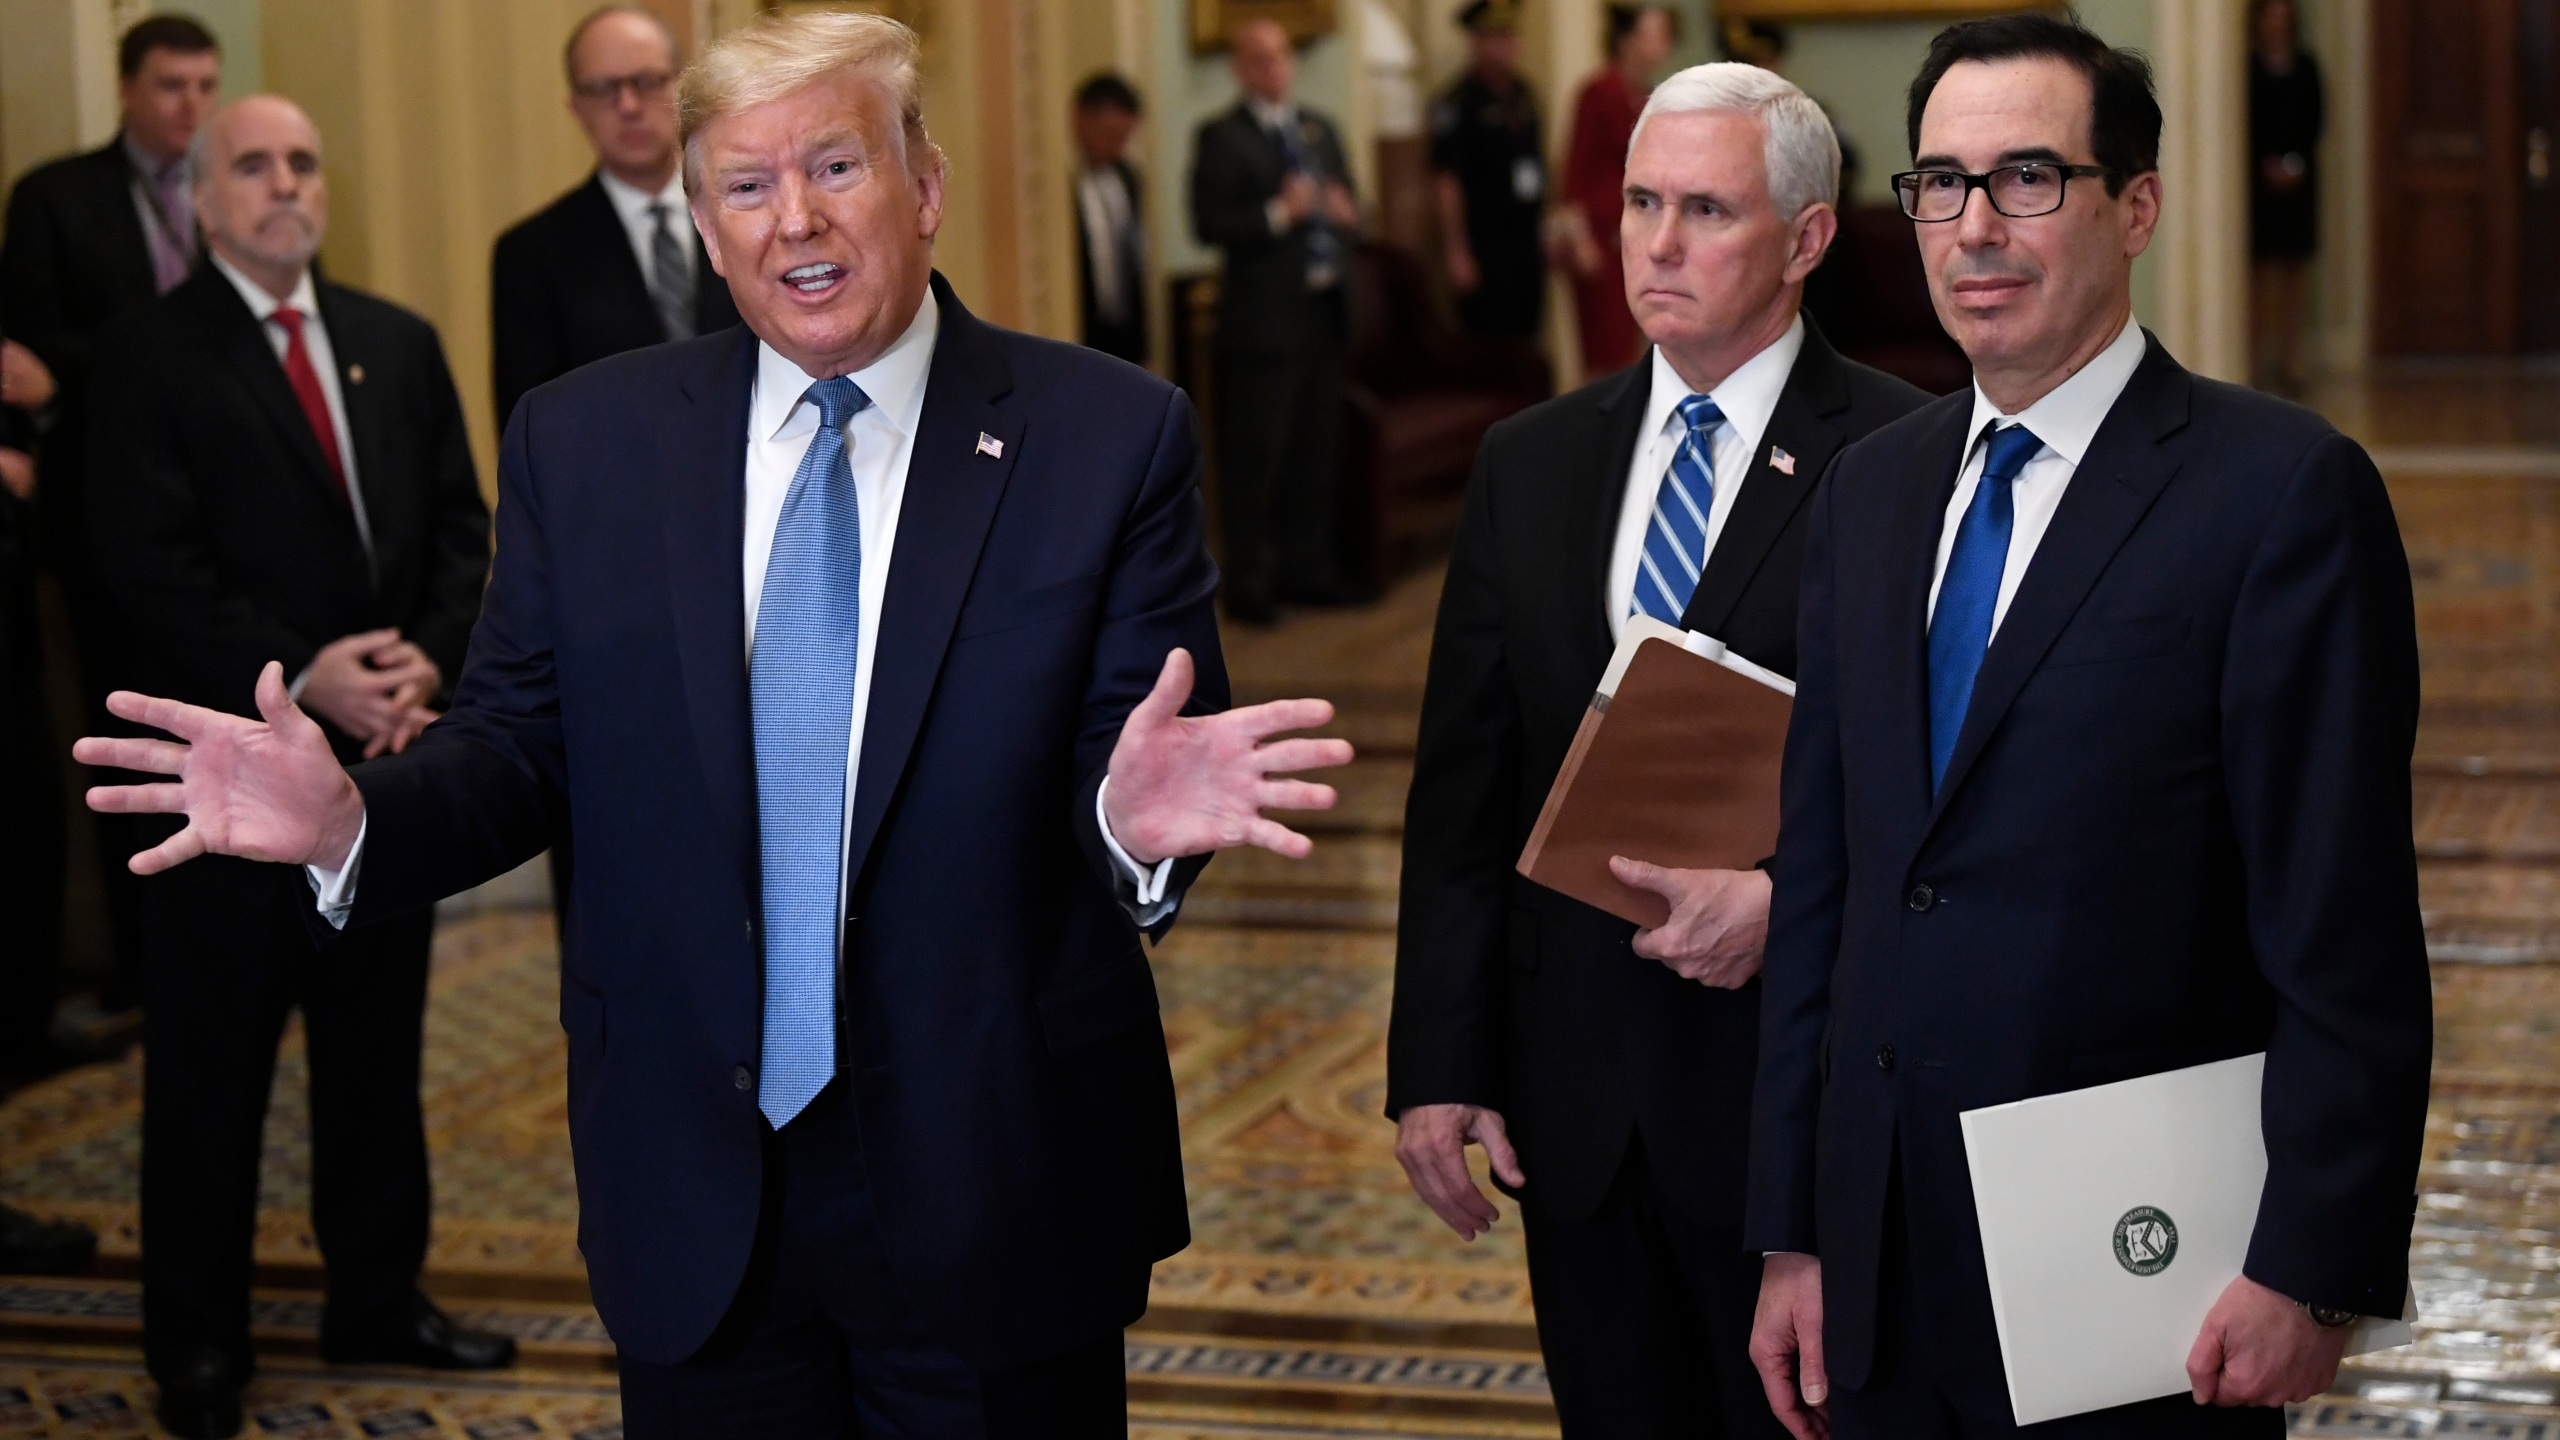 Donald Trump, Mike Pence, Steven Mnuchin